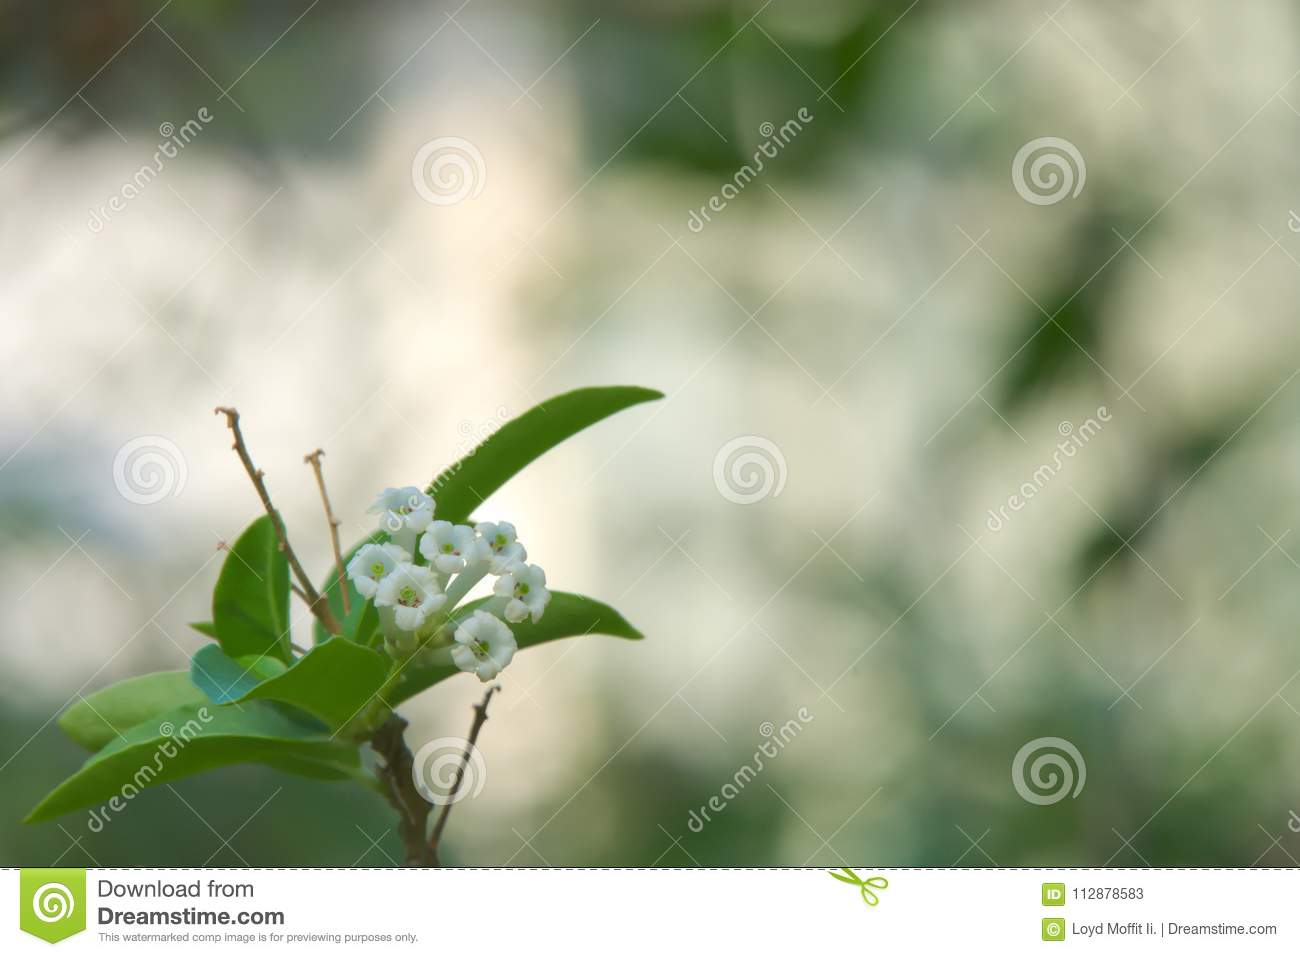 Closeup Of A Small White Cluster Of Thai Flowers With A Blurred